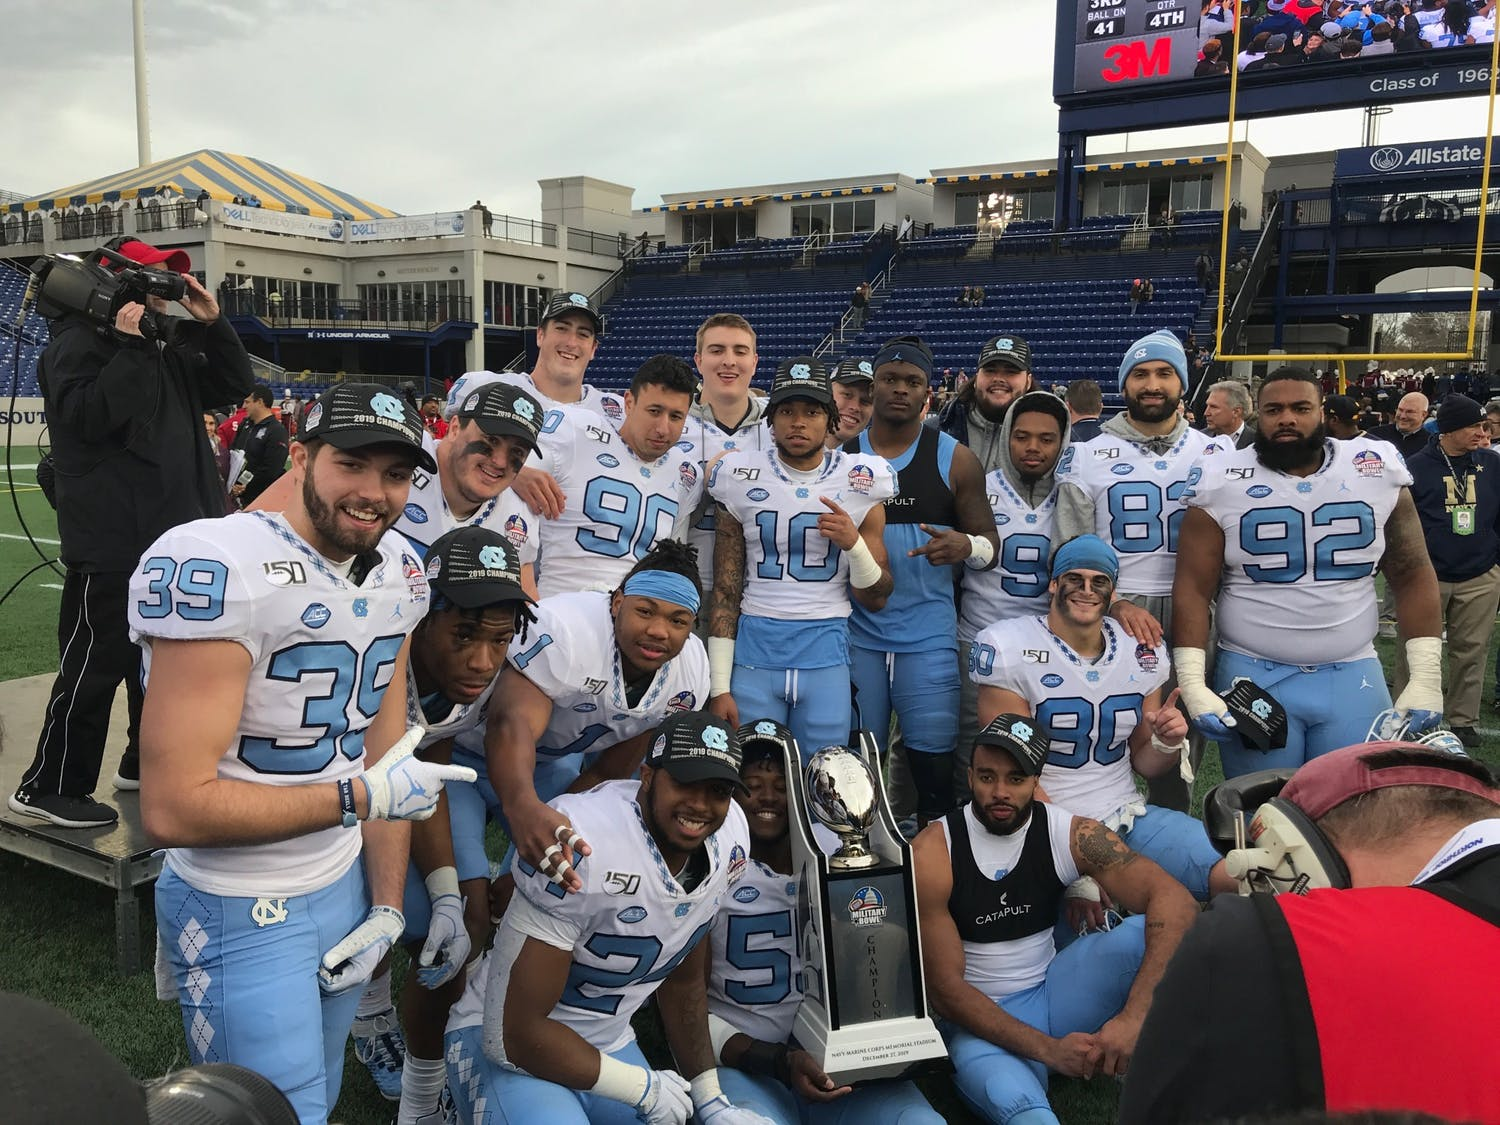 The seniors on the North Carolina football team celebrate after winning the Military Bowl on Friday, Dec. 27, 2019 against Temple 55-13.